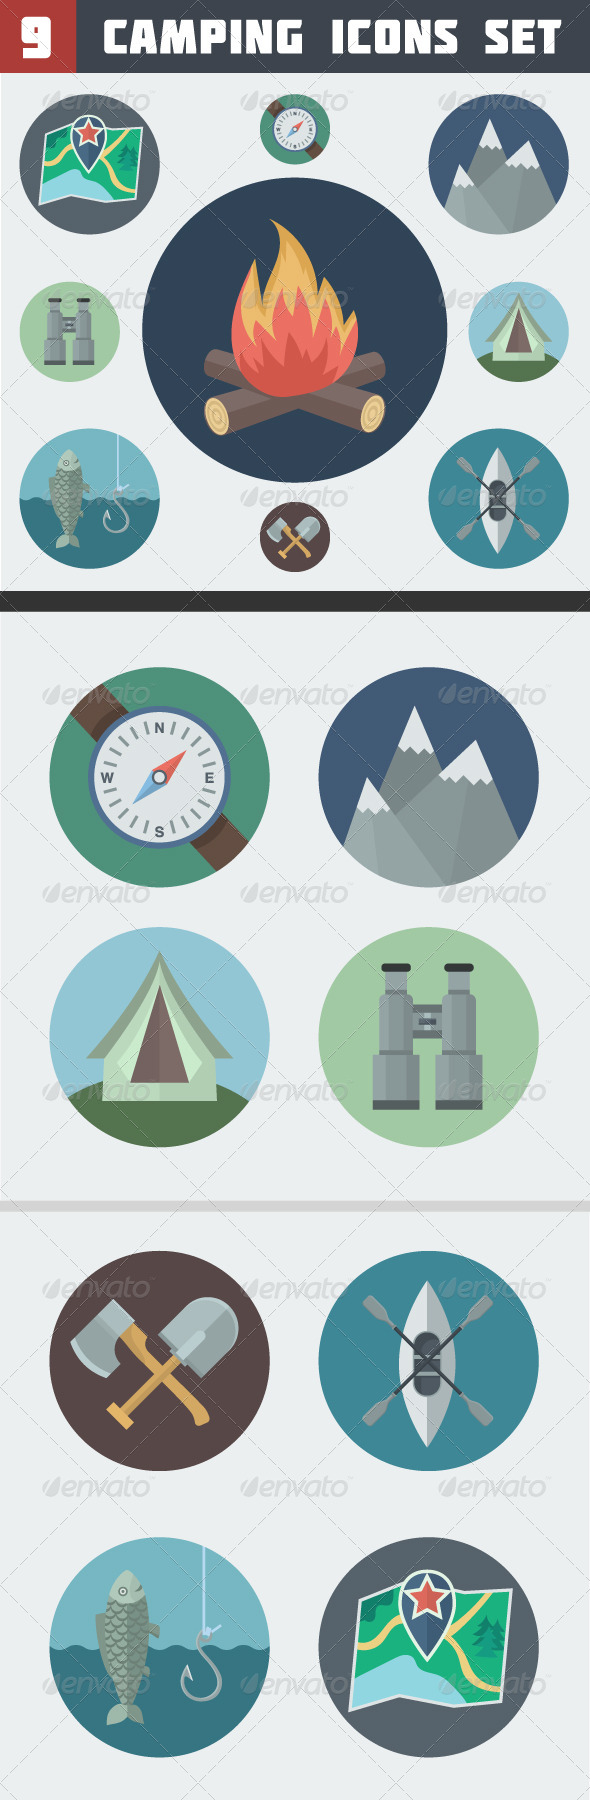 GraphicRiver Camping Icons Set 6623985